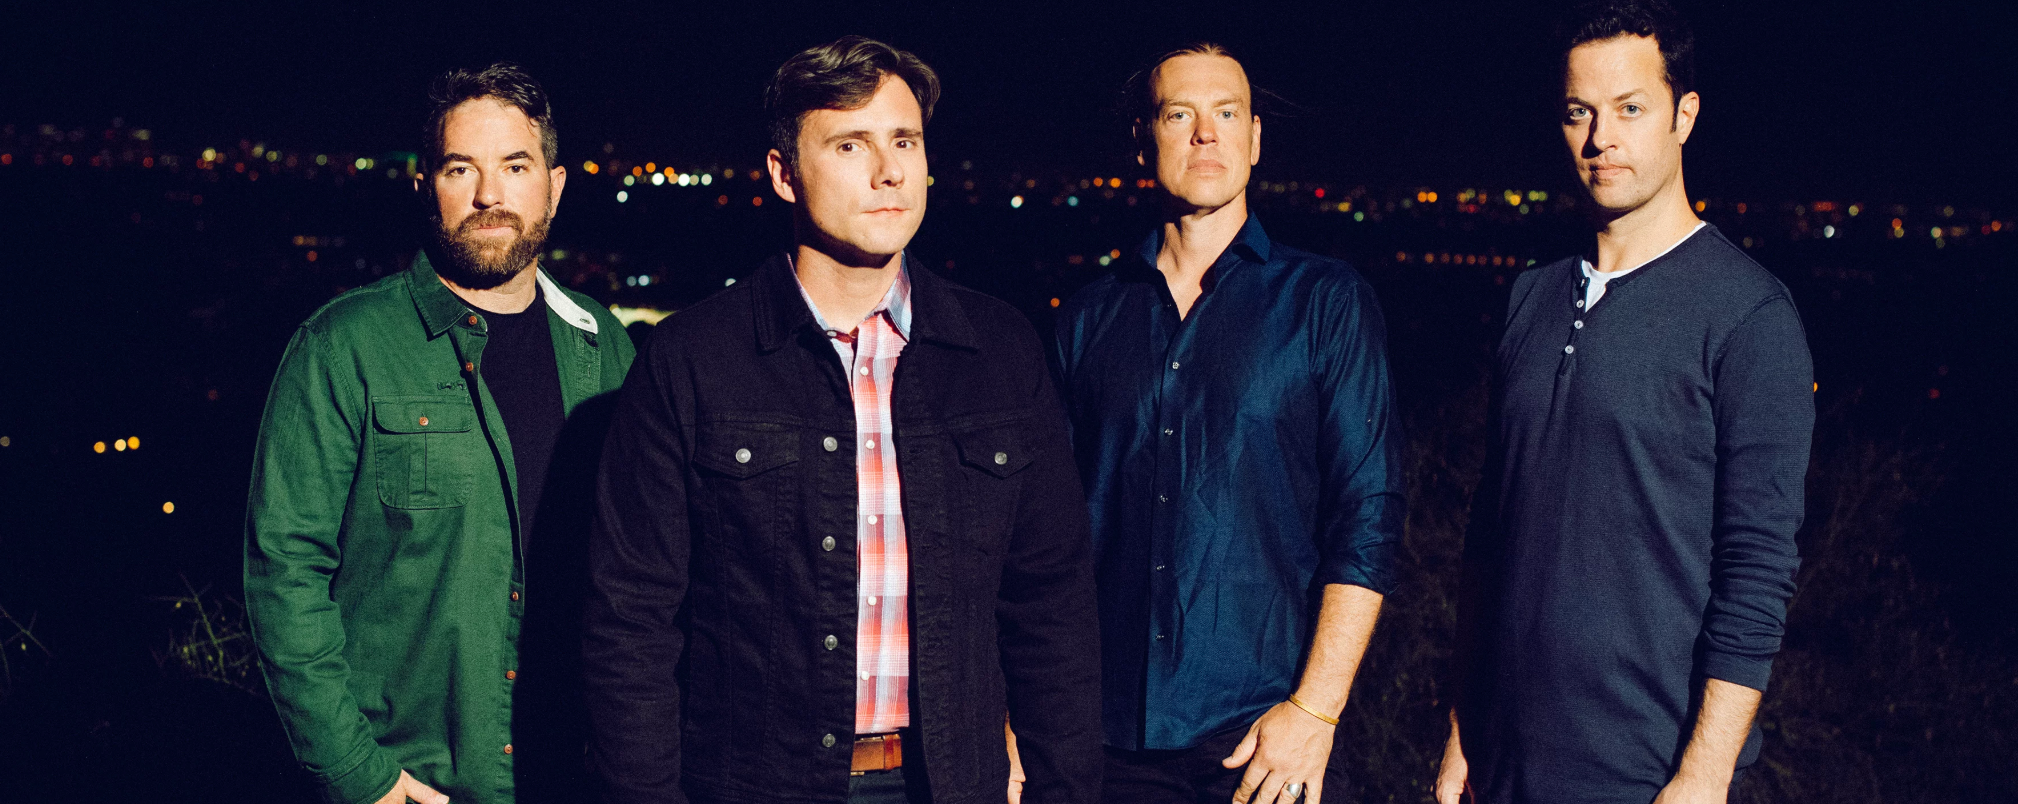 [CANCELLED] JIMMY EAT WORLD Surviving: The Asia Tour 2020